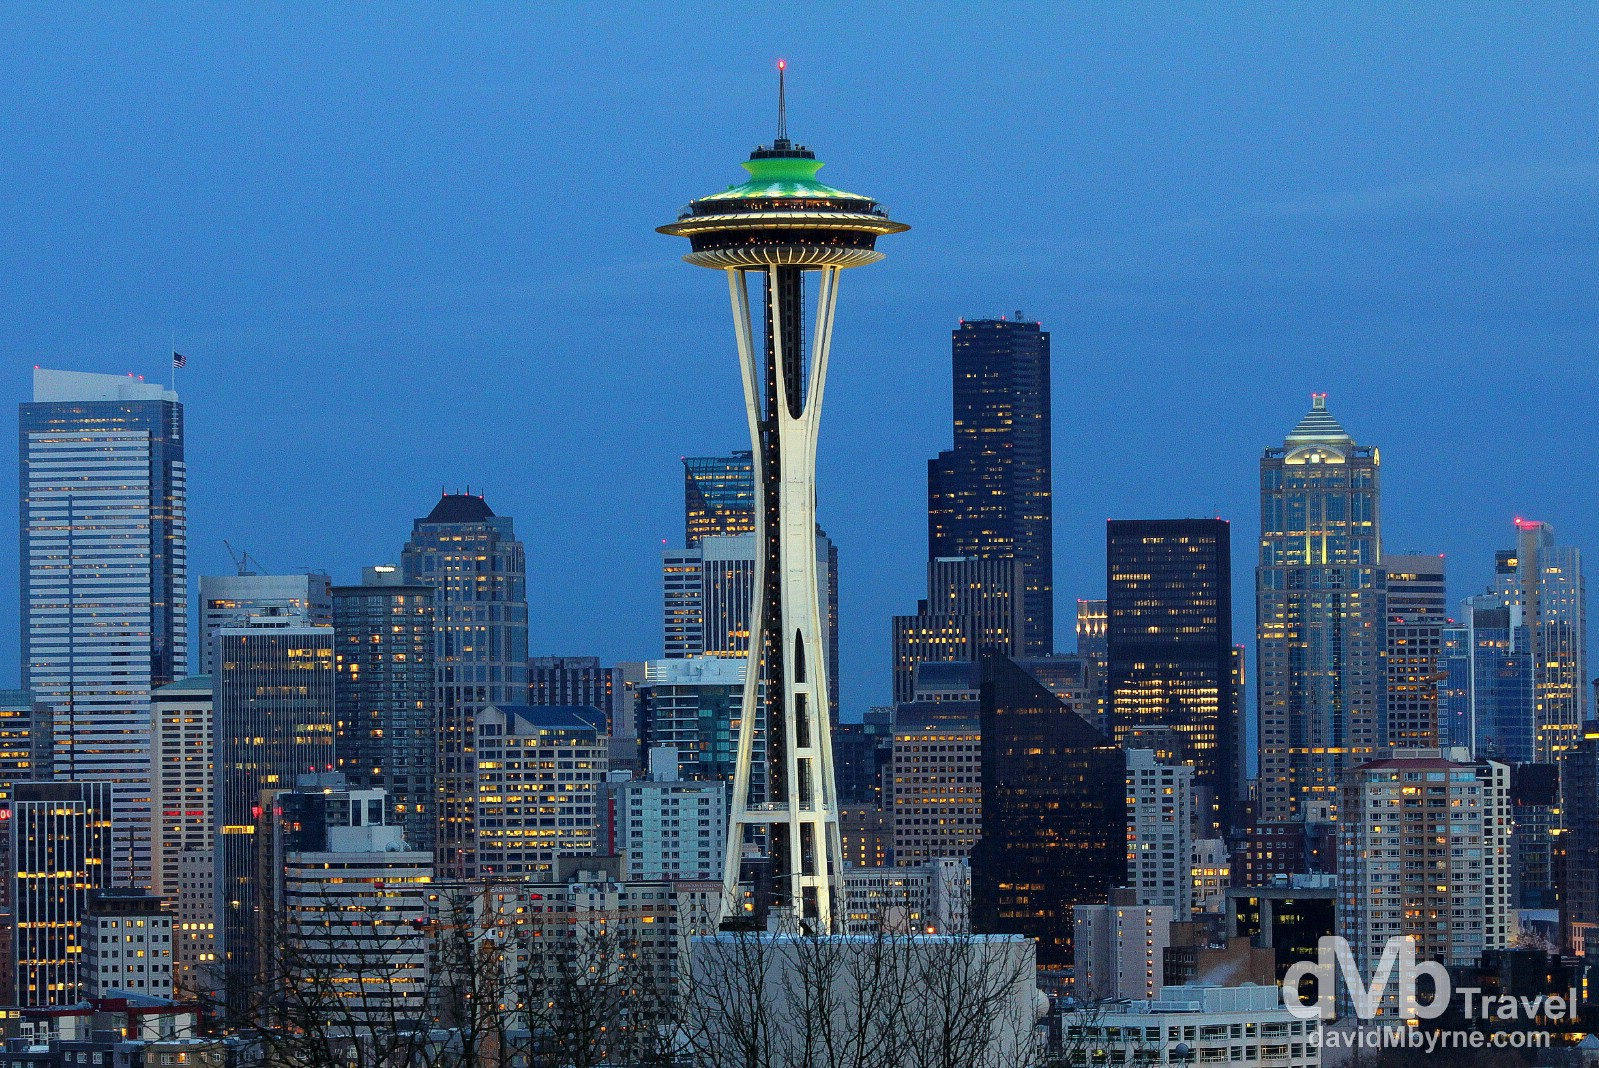 The Seattle city skyline at dusk from Kelly Park, Seattle, Washington, USA. March 26th 2013.